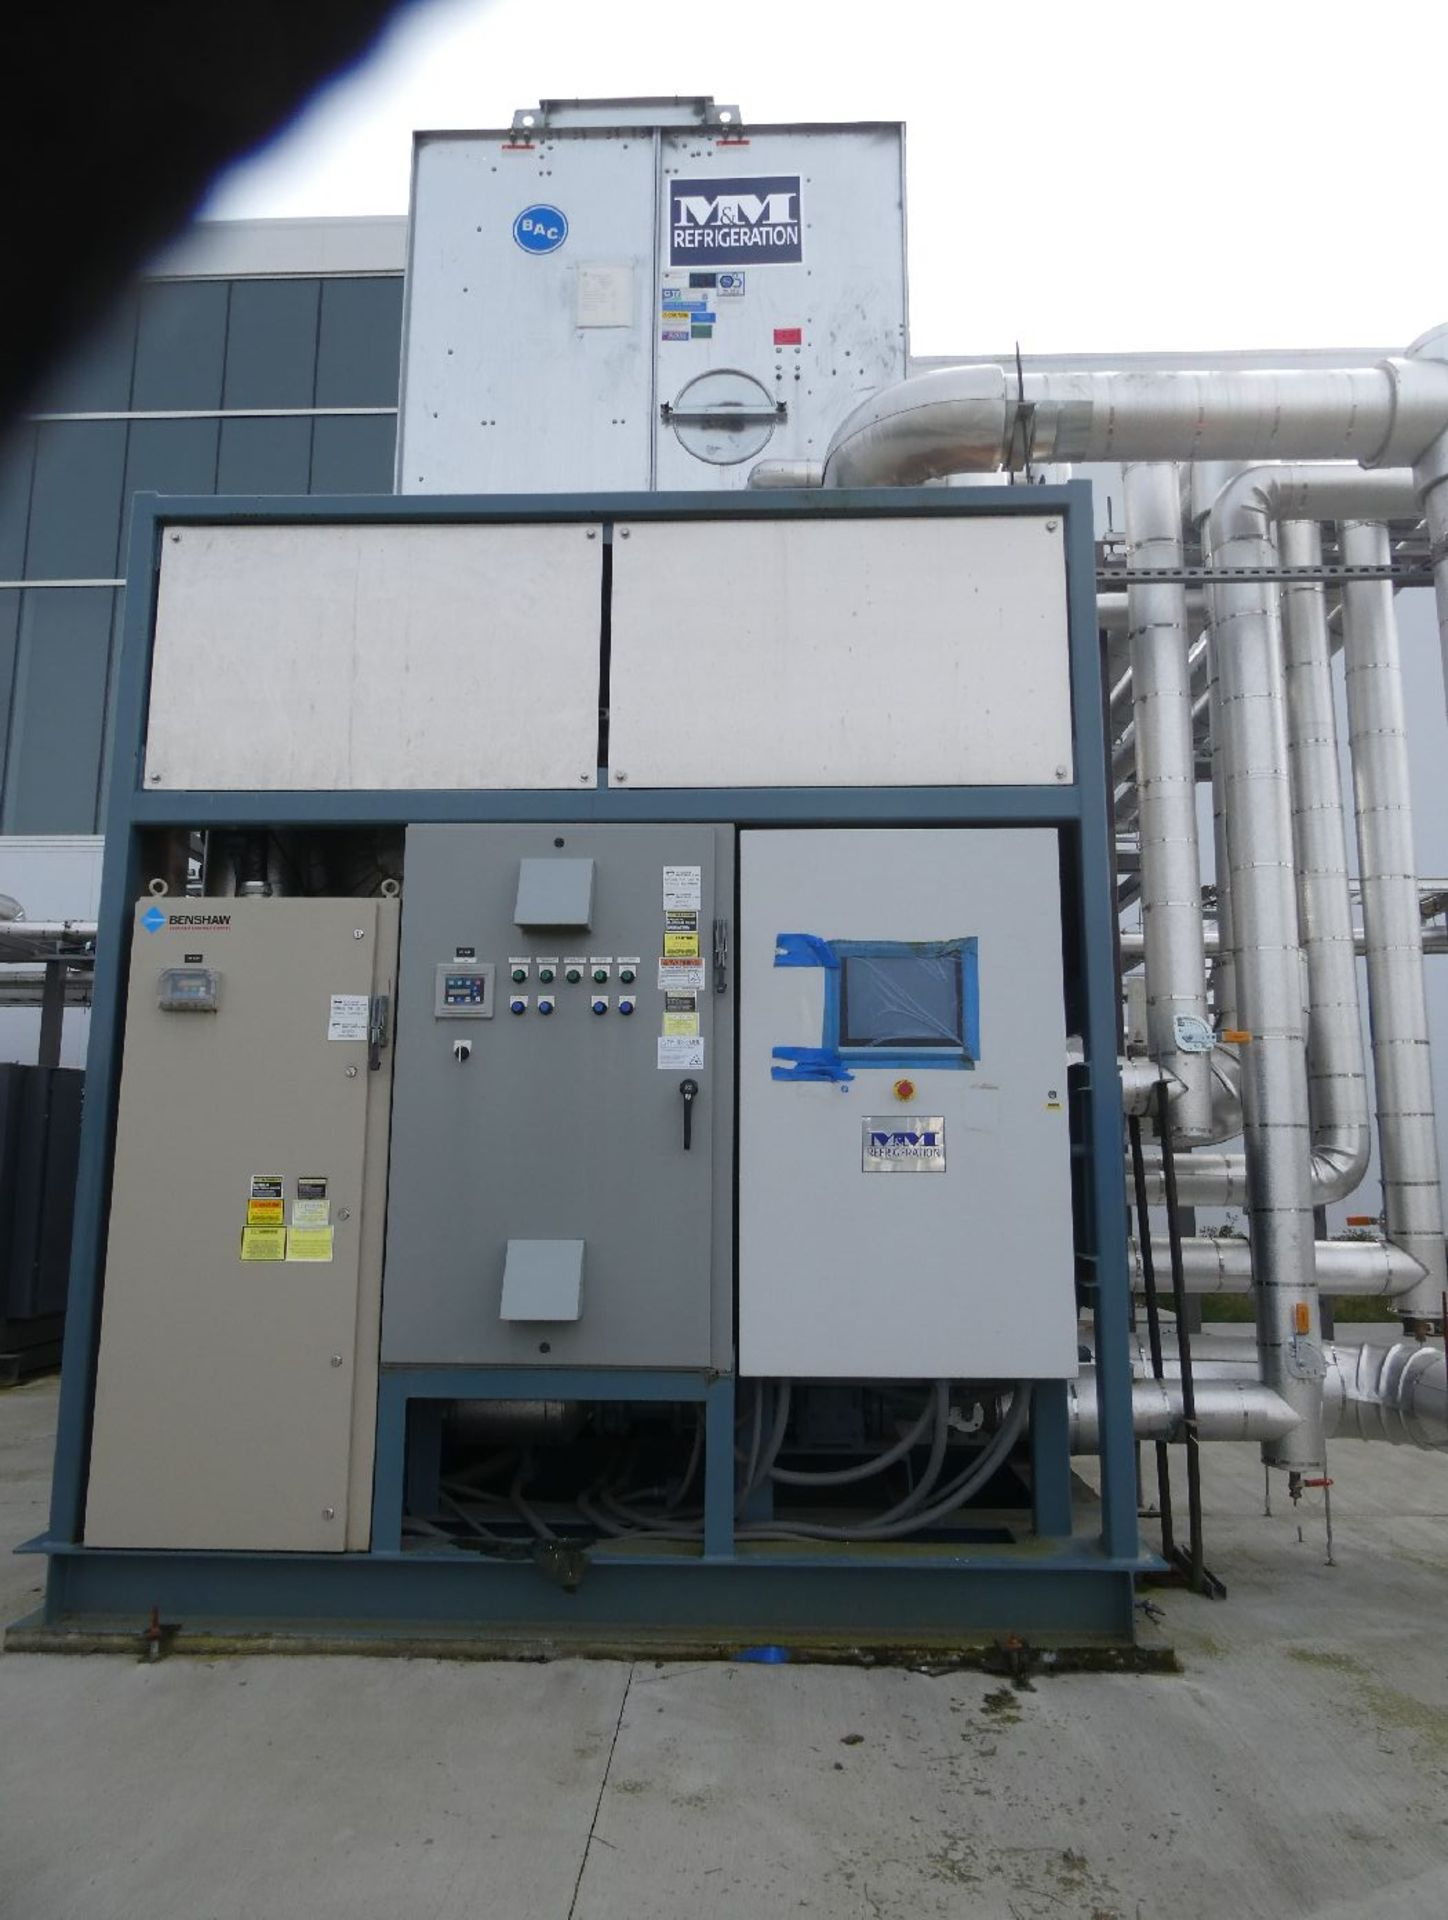 ROTAX Closed Loop Solvent Based Continuous Oil Extraction System - Image 58 of 68